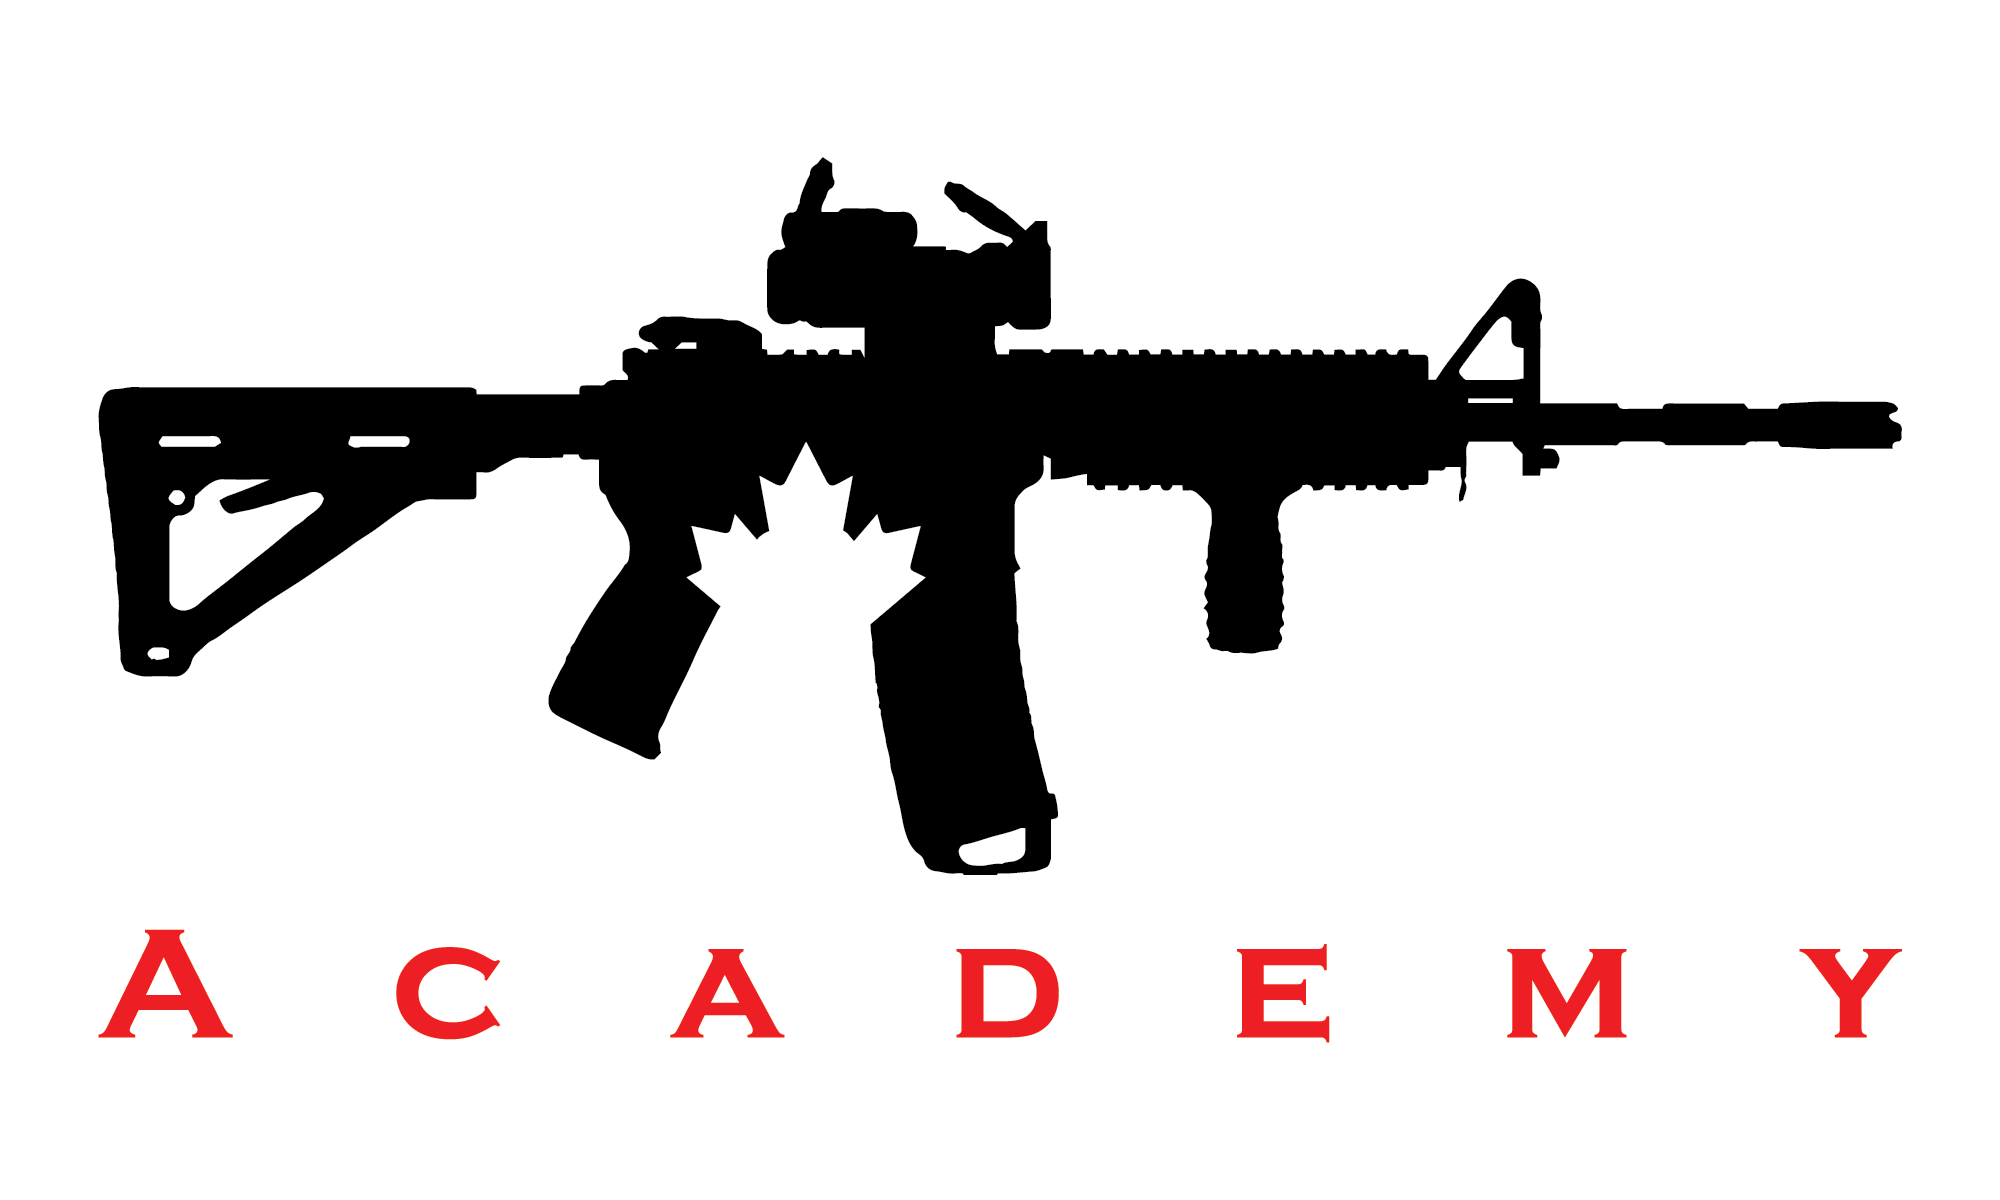 Black Rifle Academy